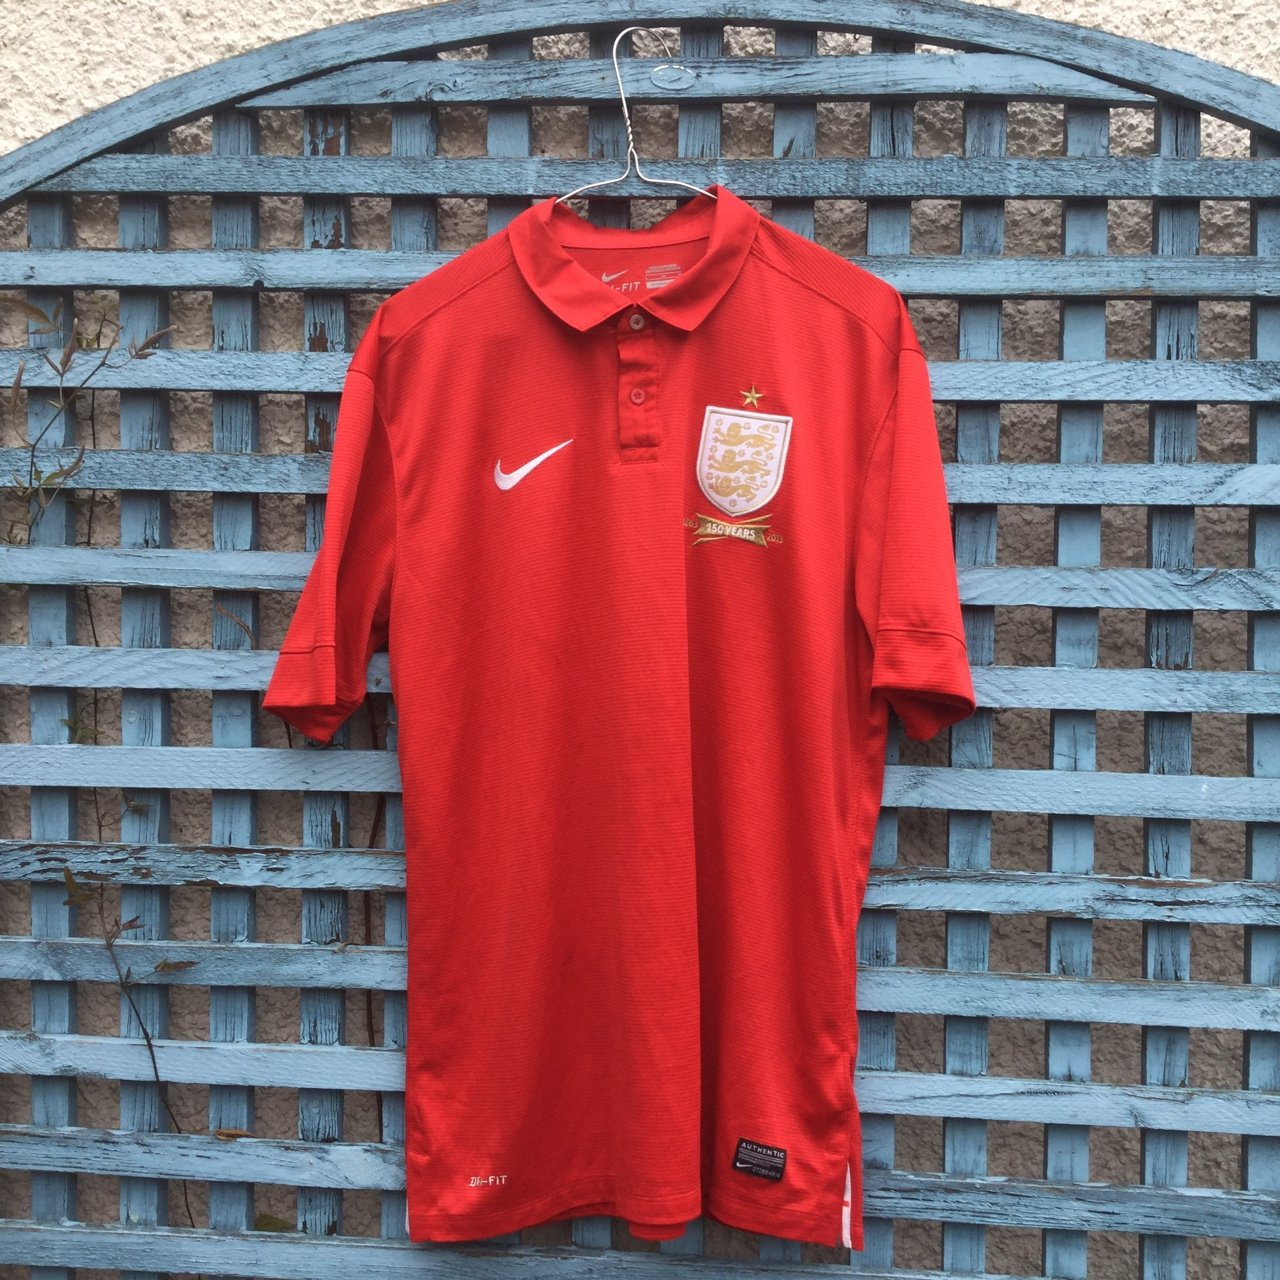 c216e9ee England Football Shirt 2013 Nike - DREAMWORKS